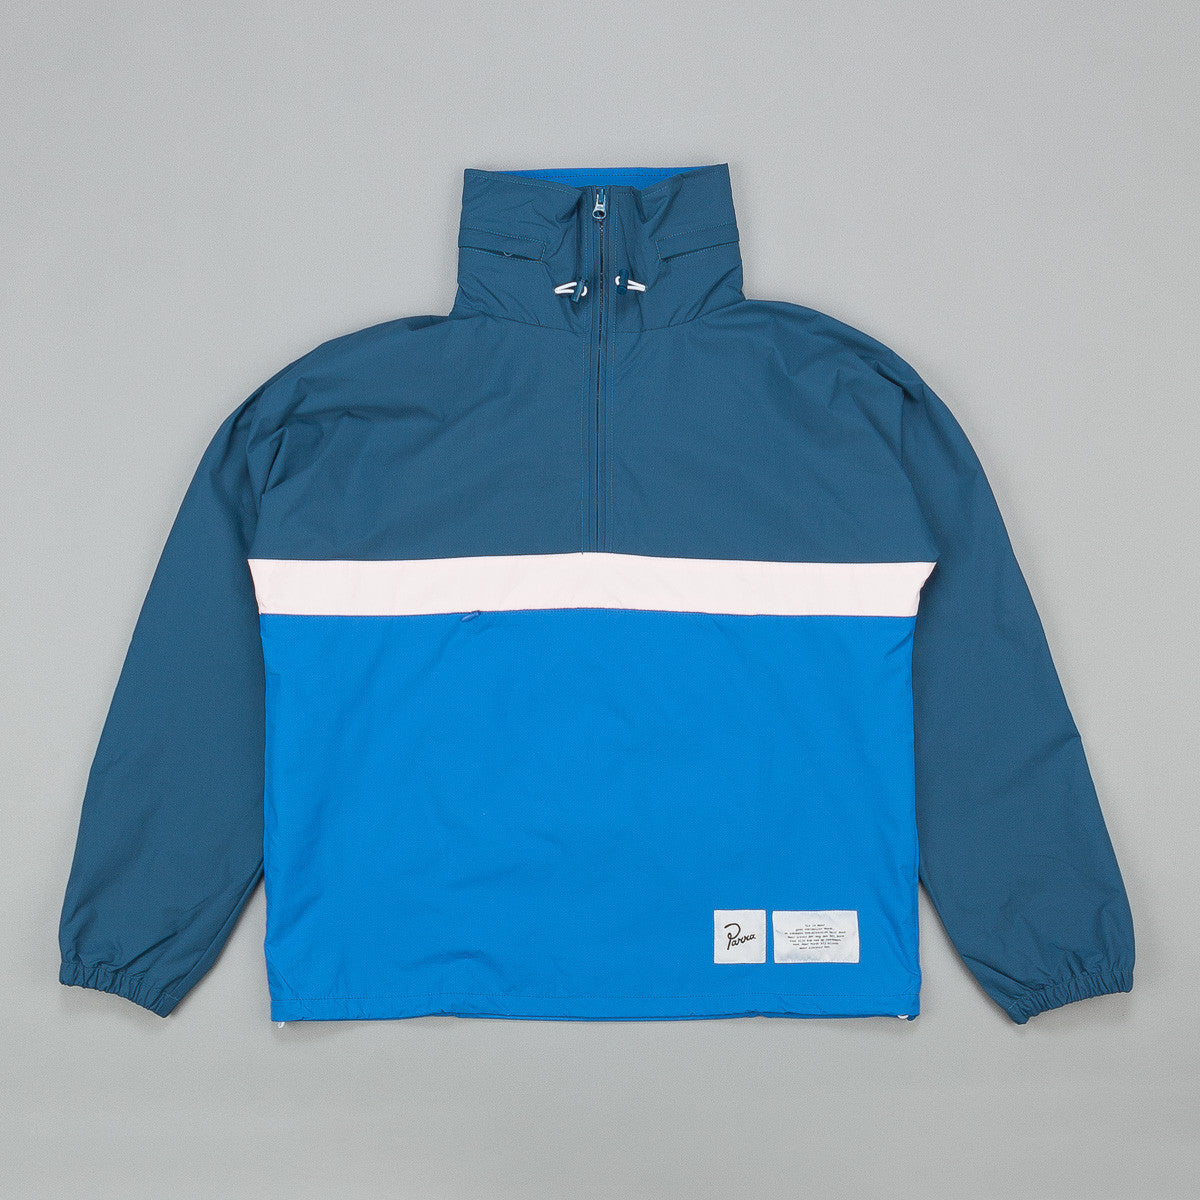 Parra 1994 Windbreaker Jacket